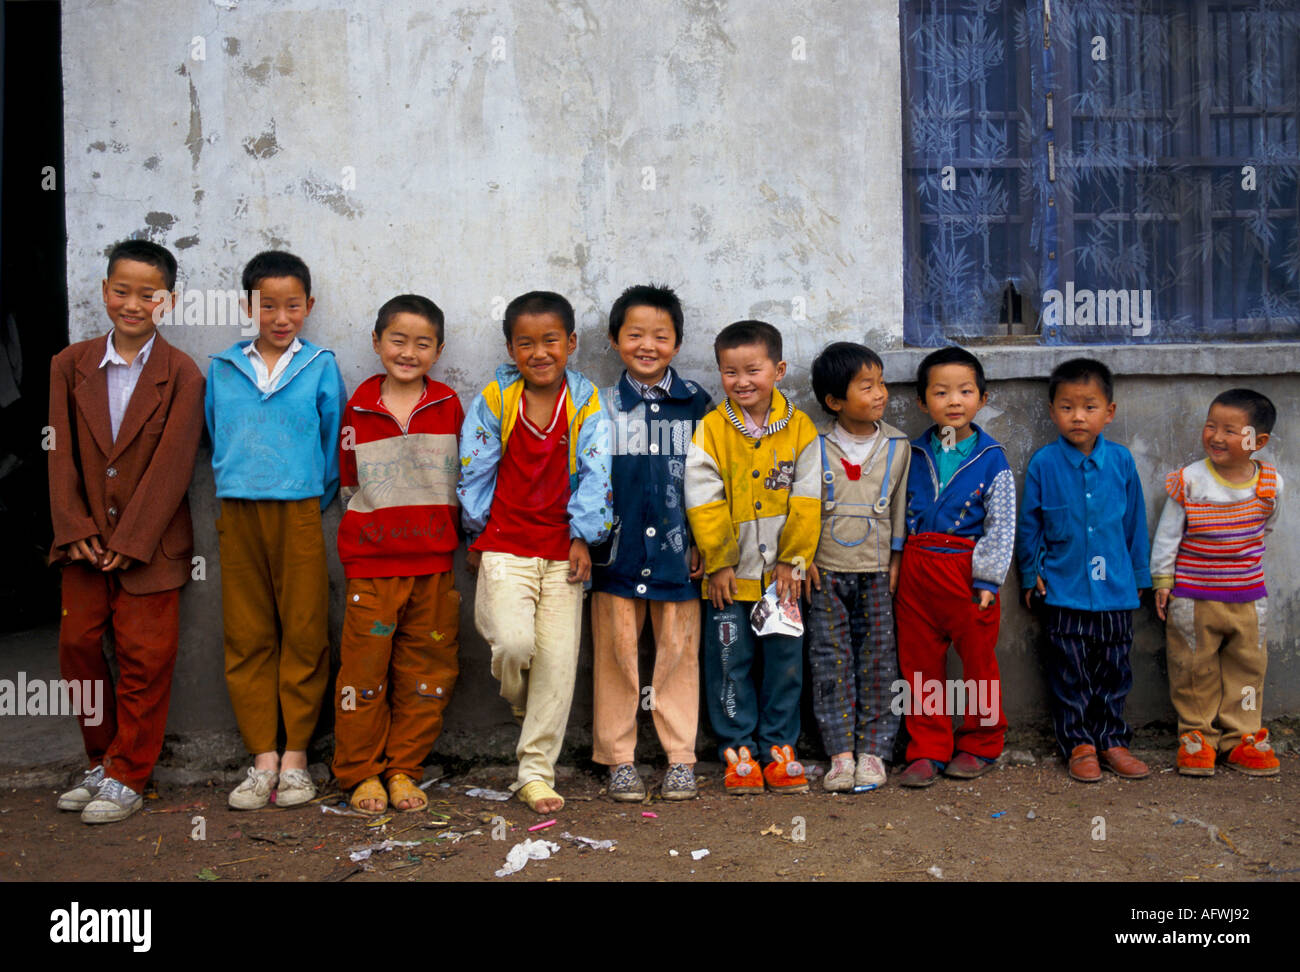 China All Boys Liufu Village Anhui Province Abnormally High Ratio